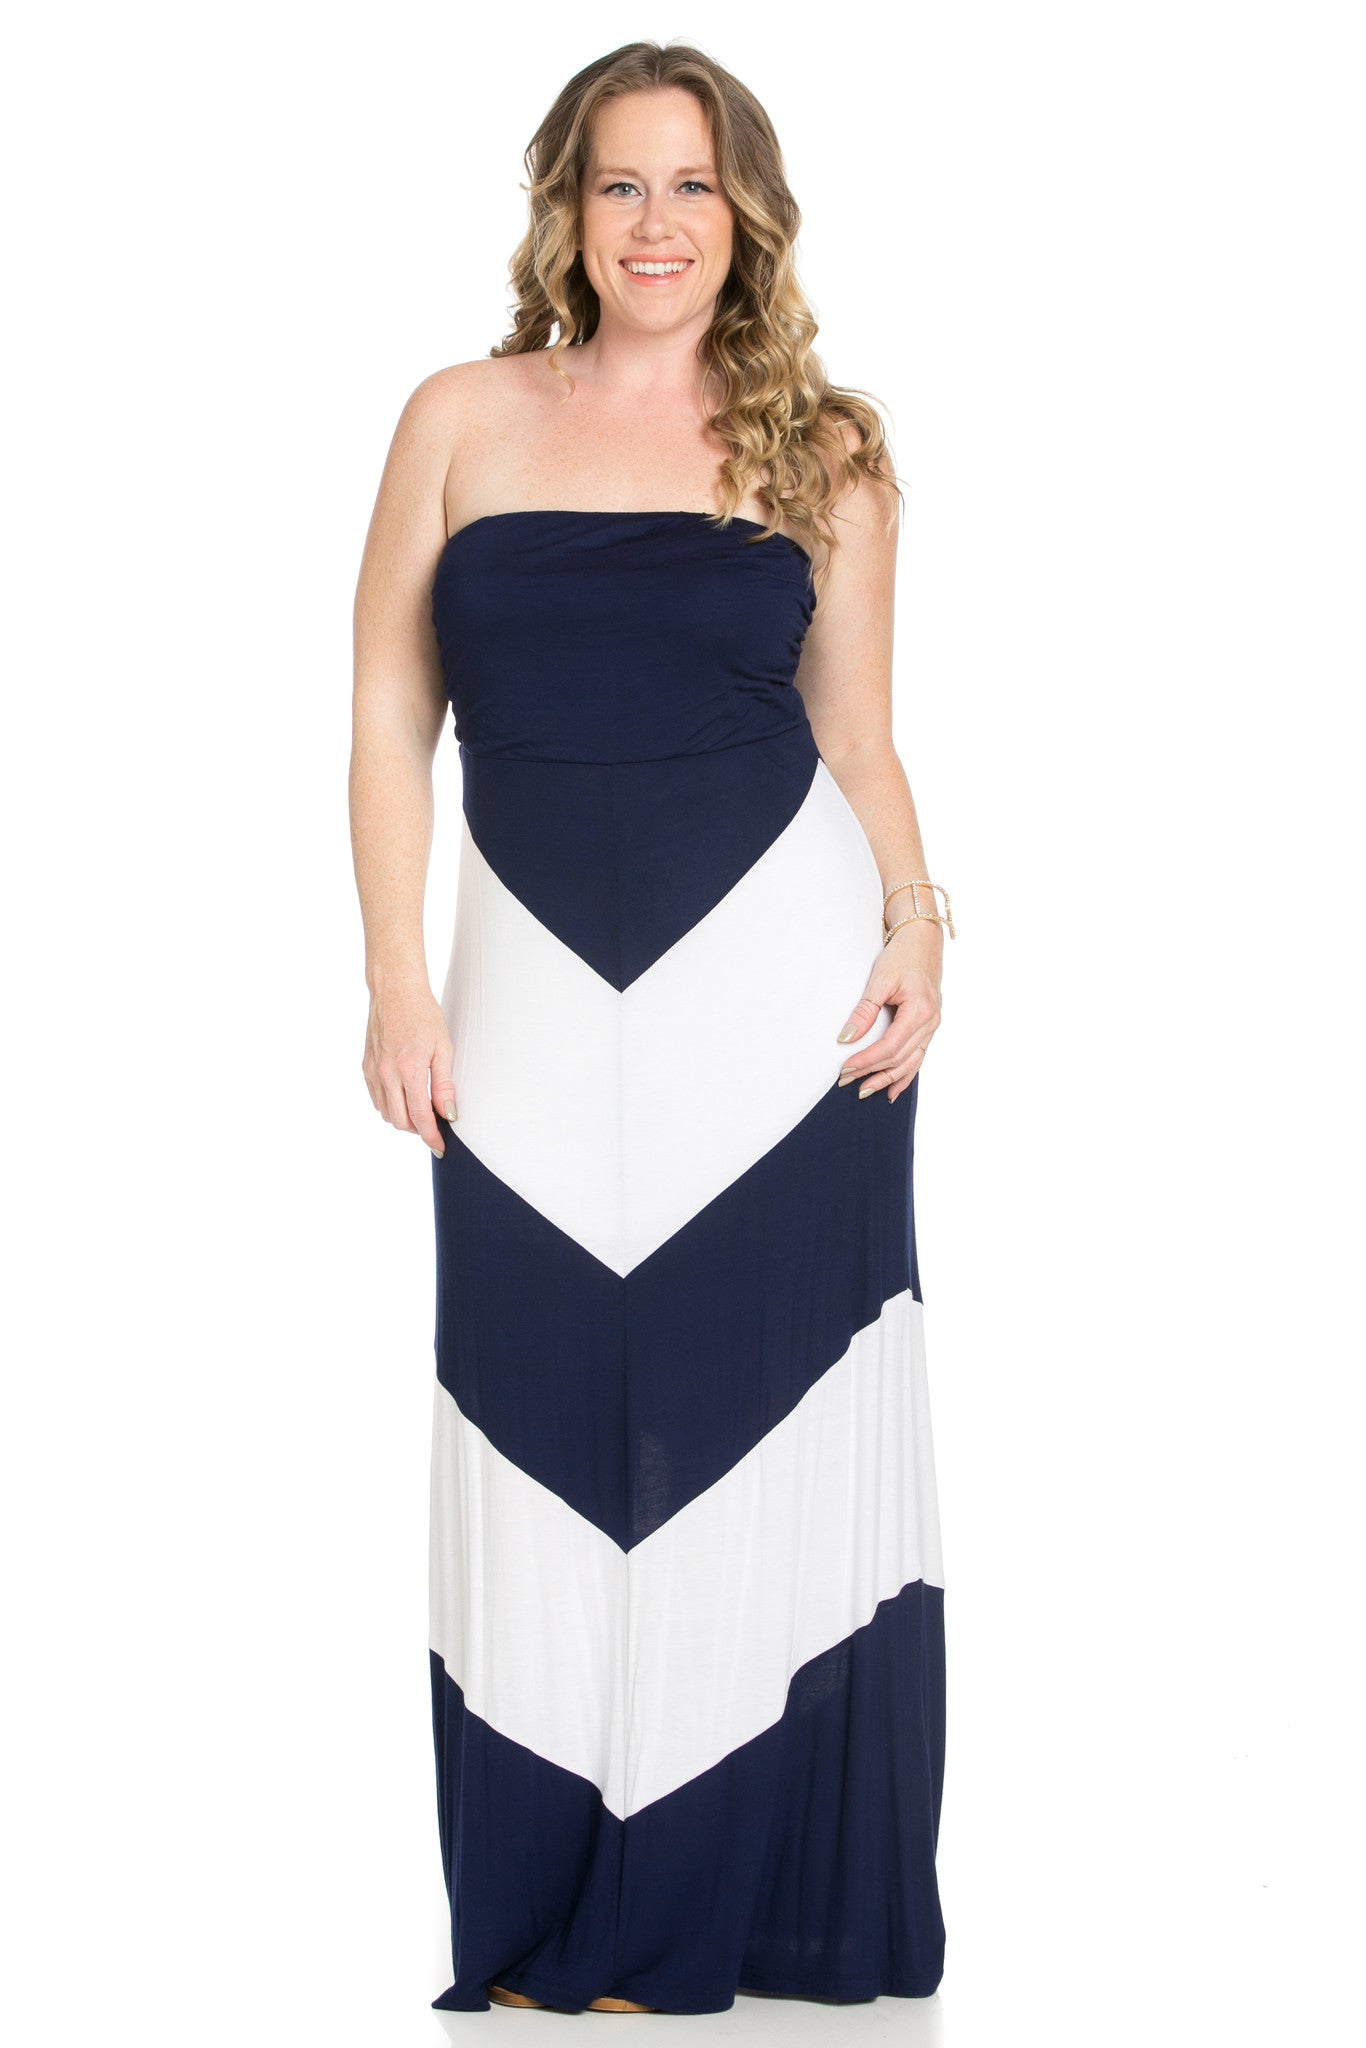 Strapless Long tube Dress Navy/White Cause You're Chevron - Dresses - My Yuccie - 4